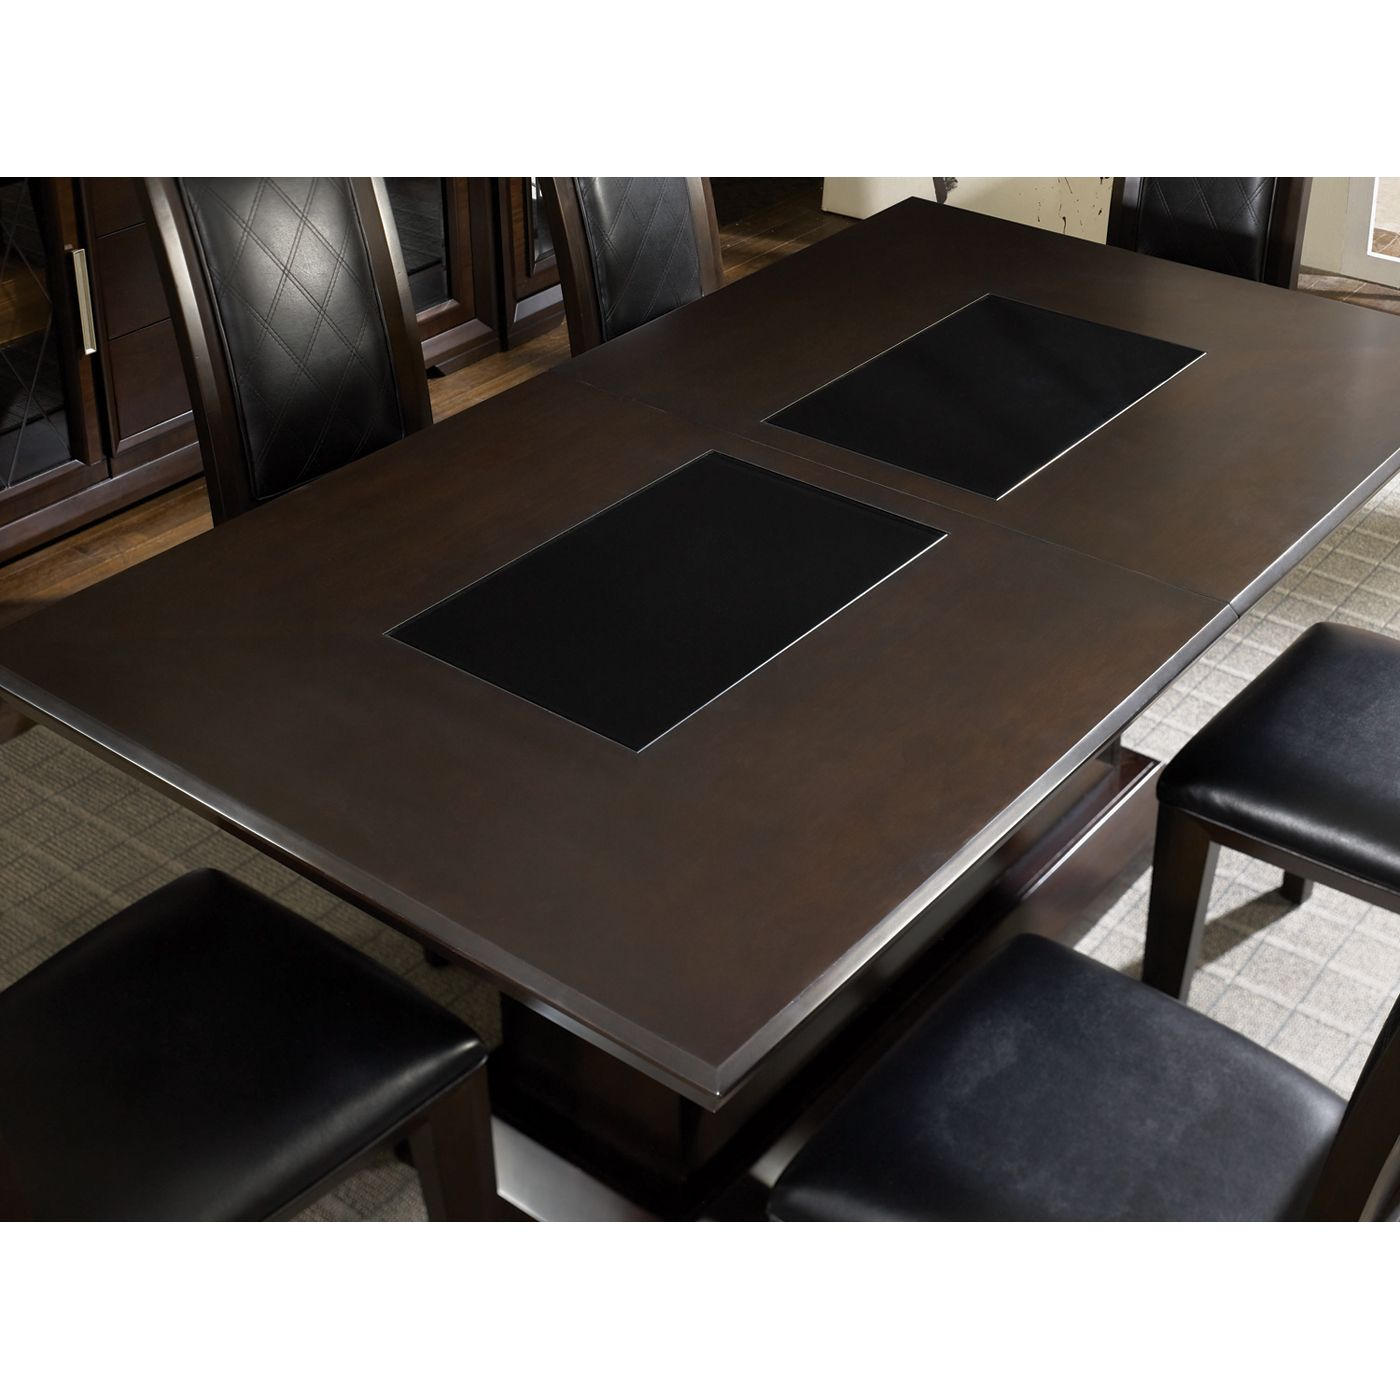 najarian furniture brentwood formal dining table atg stores najarian furniture brentwood formal dining table atg stores